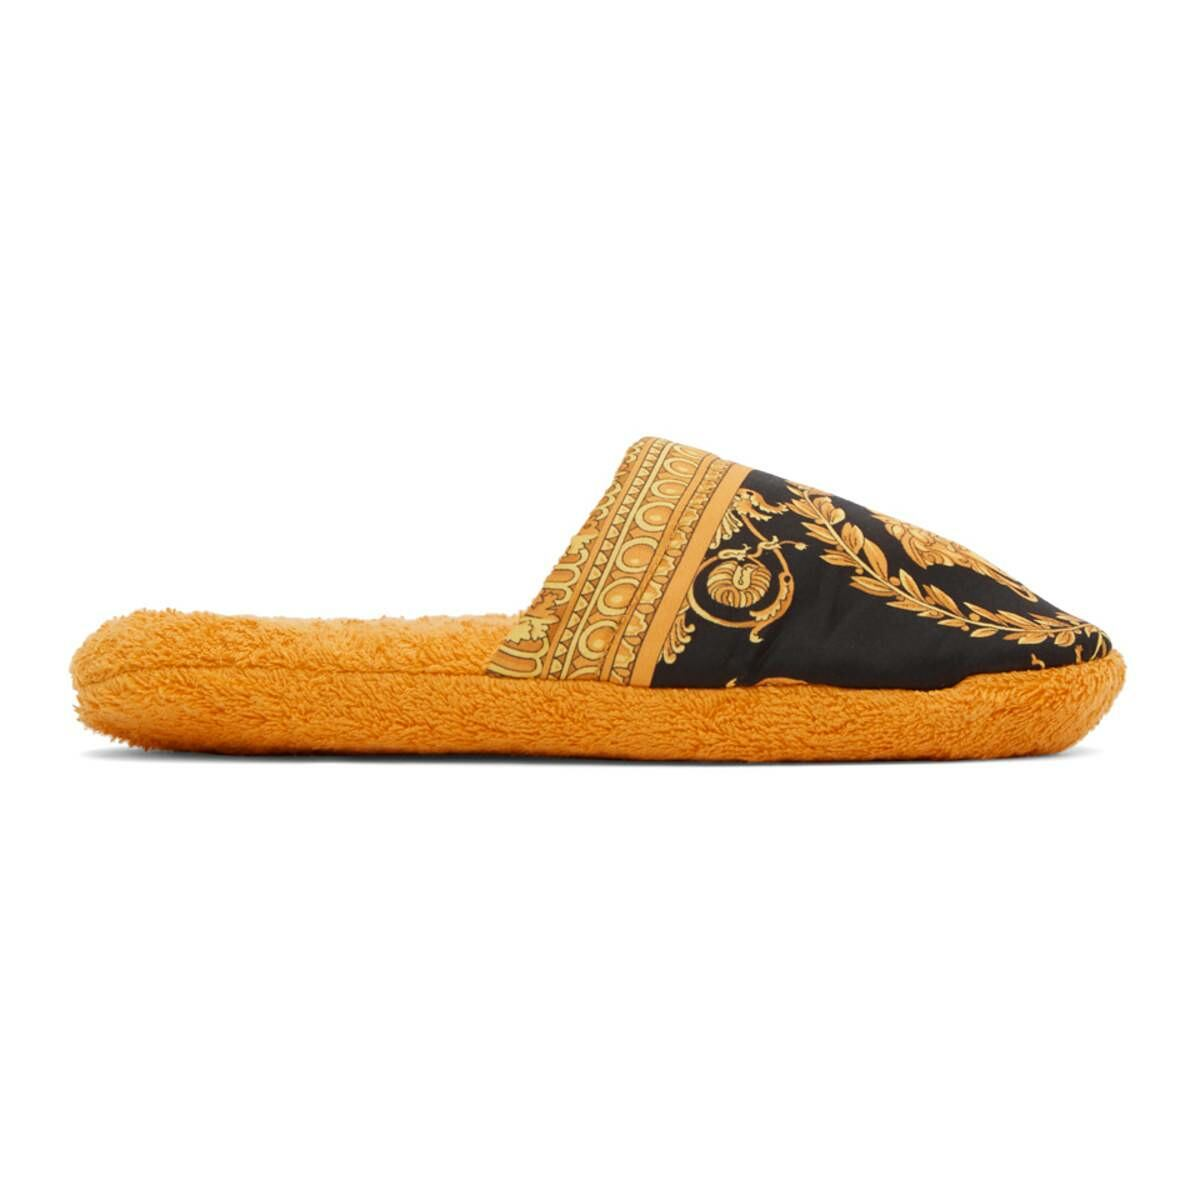 Versace Yellow Baroque Slippers Ssense USA MEN Men SHOES Mens LOAFERS